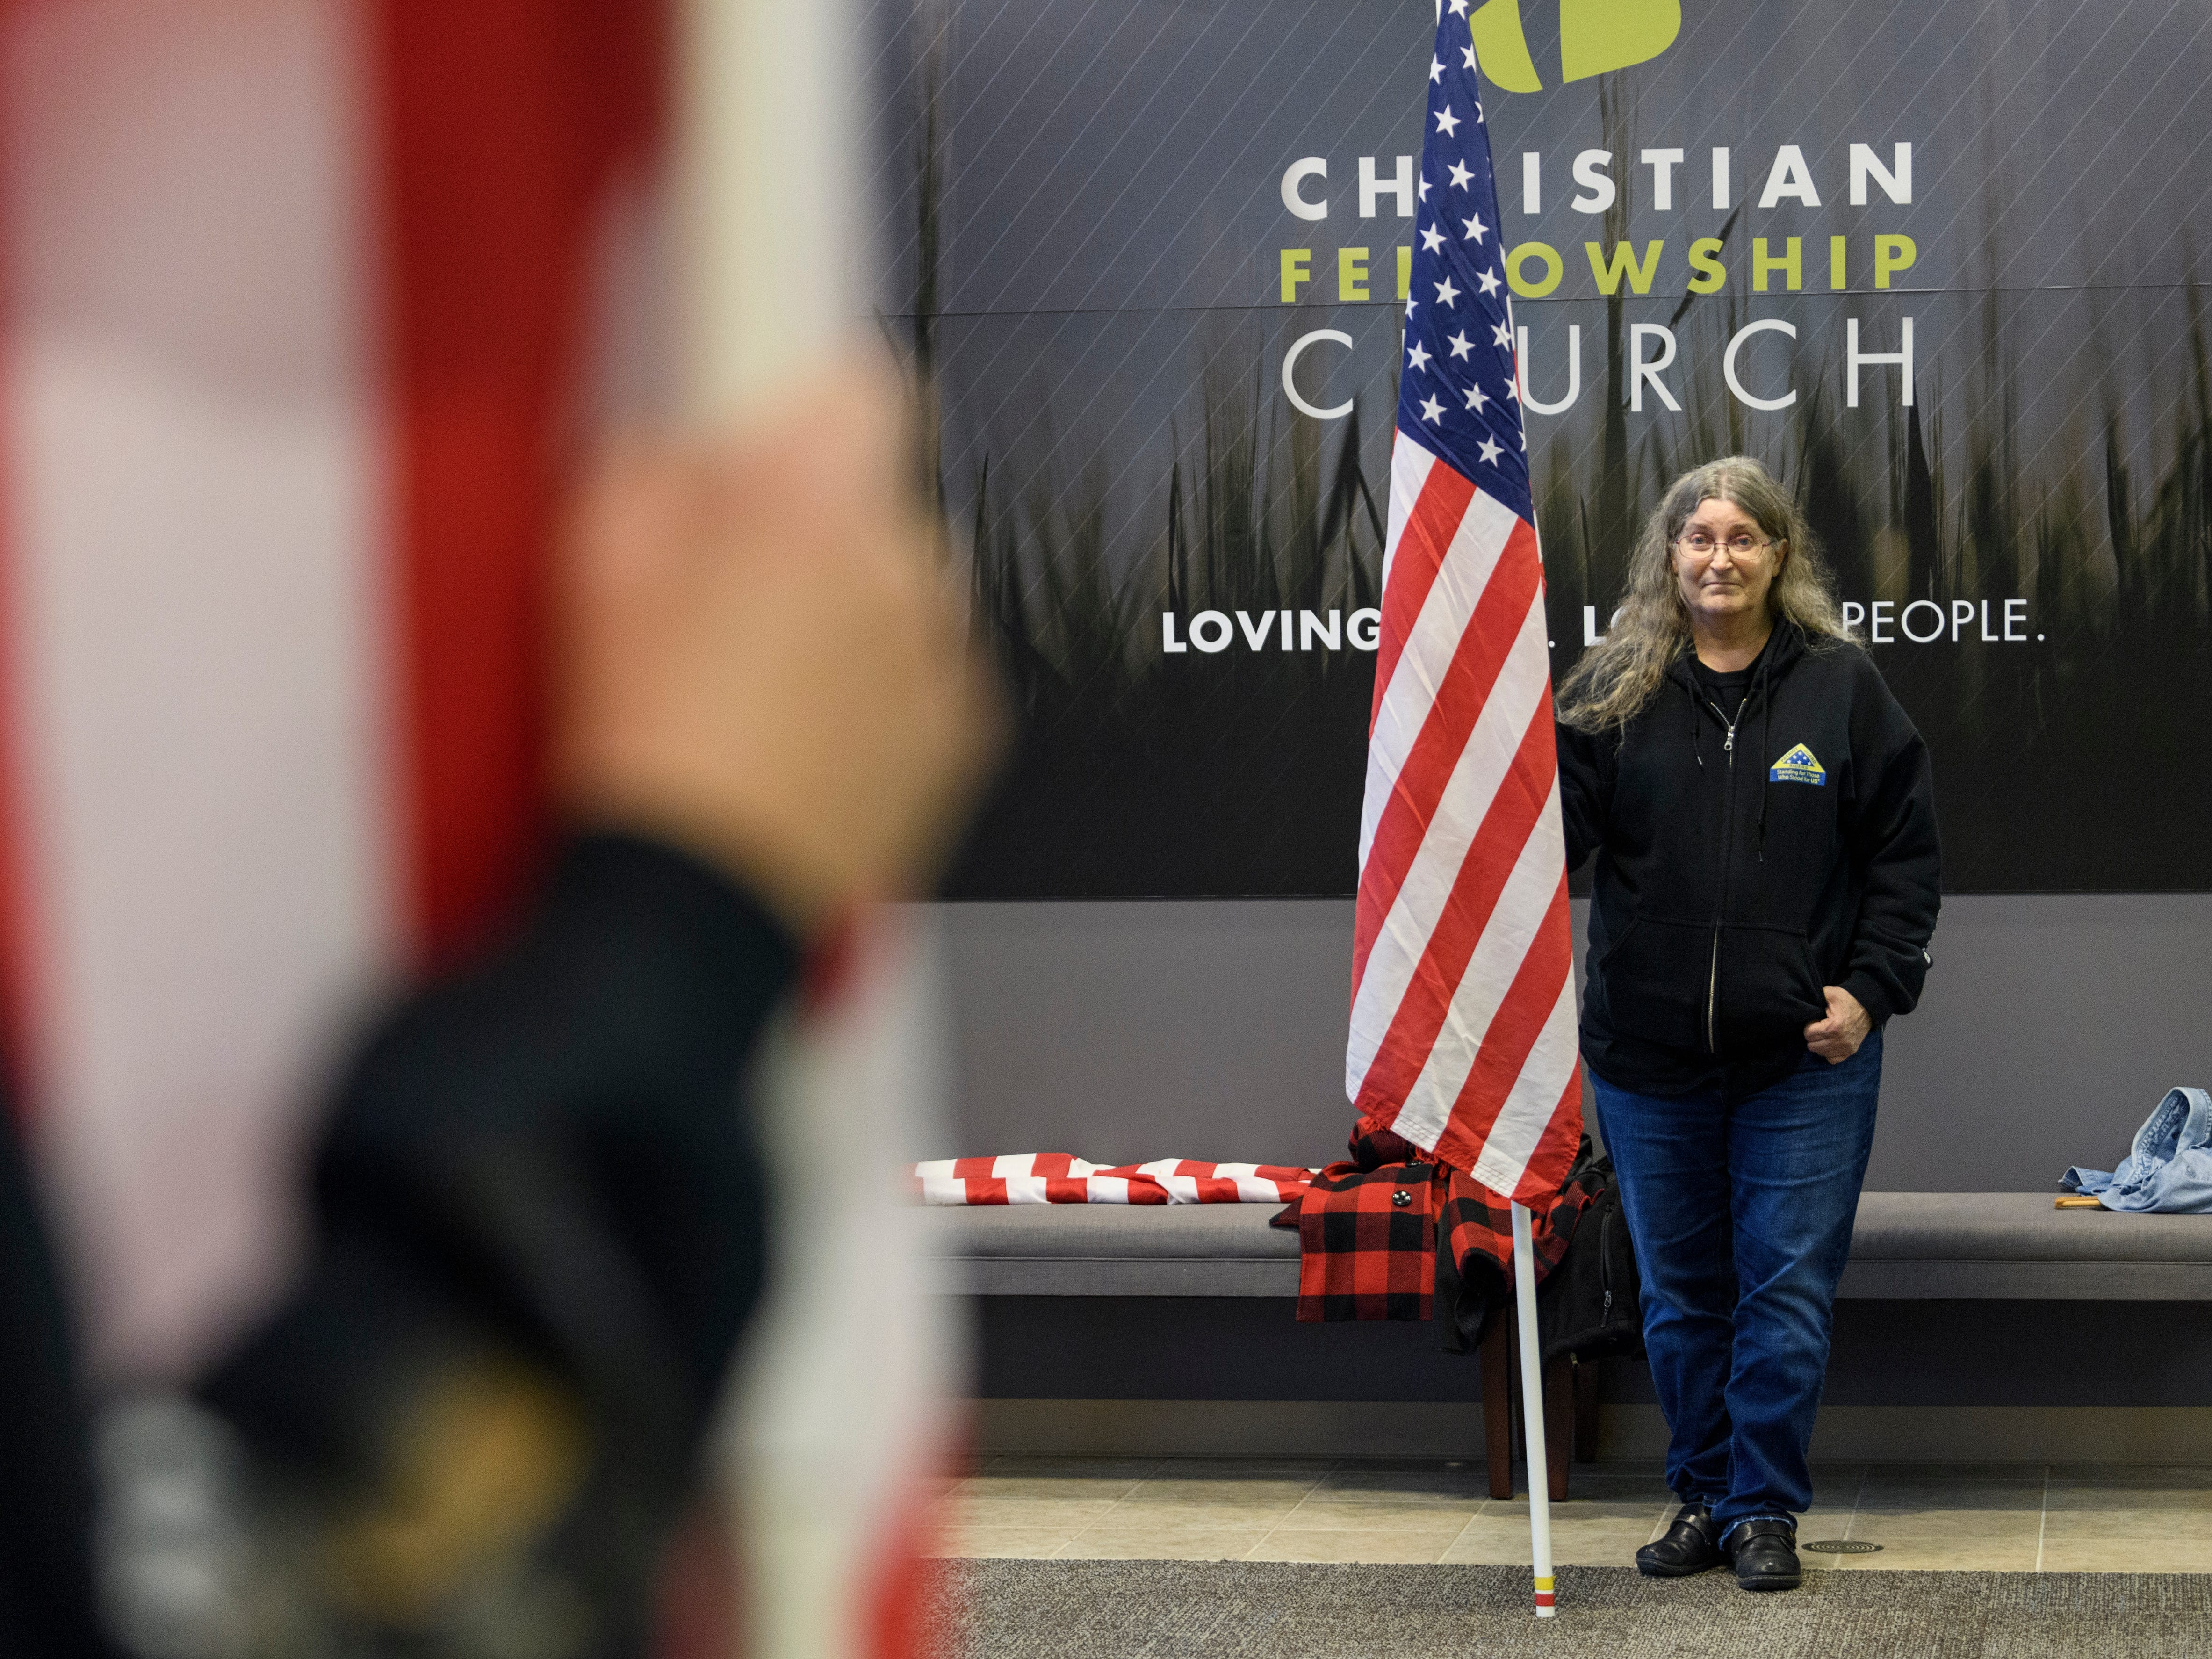 Julie Davidson, right, stands across from Peggy Jo Hammond, left, as they display American Flags in the entryway of Evansville's Christian Fellowship Church during a visitation held for Army Sgt. Drew Watters, Tuesday afternoon, Nov. 13, 2018. The group, which includes military veterans and civilians, attend memorial services at the request of deceased soldiers' or veterans' family.